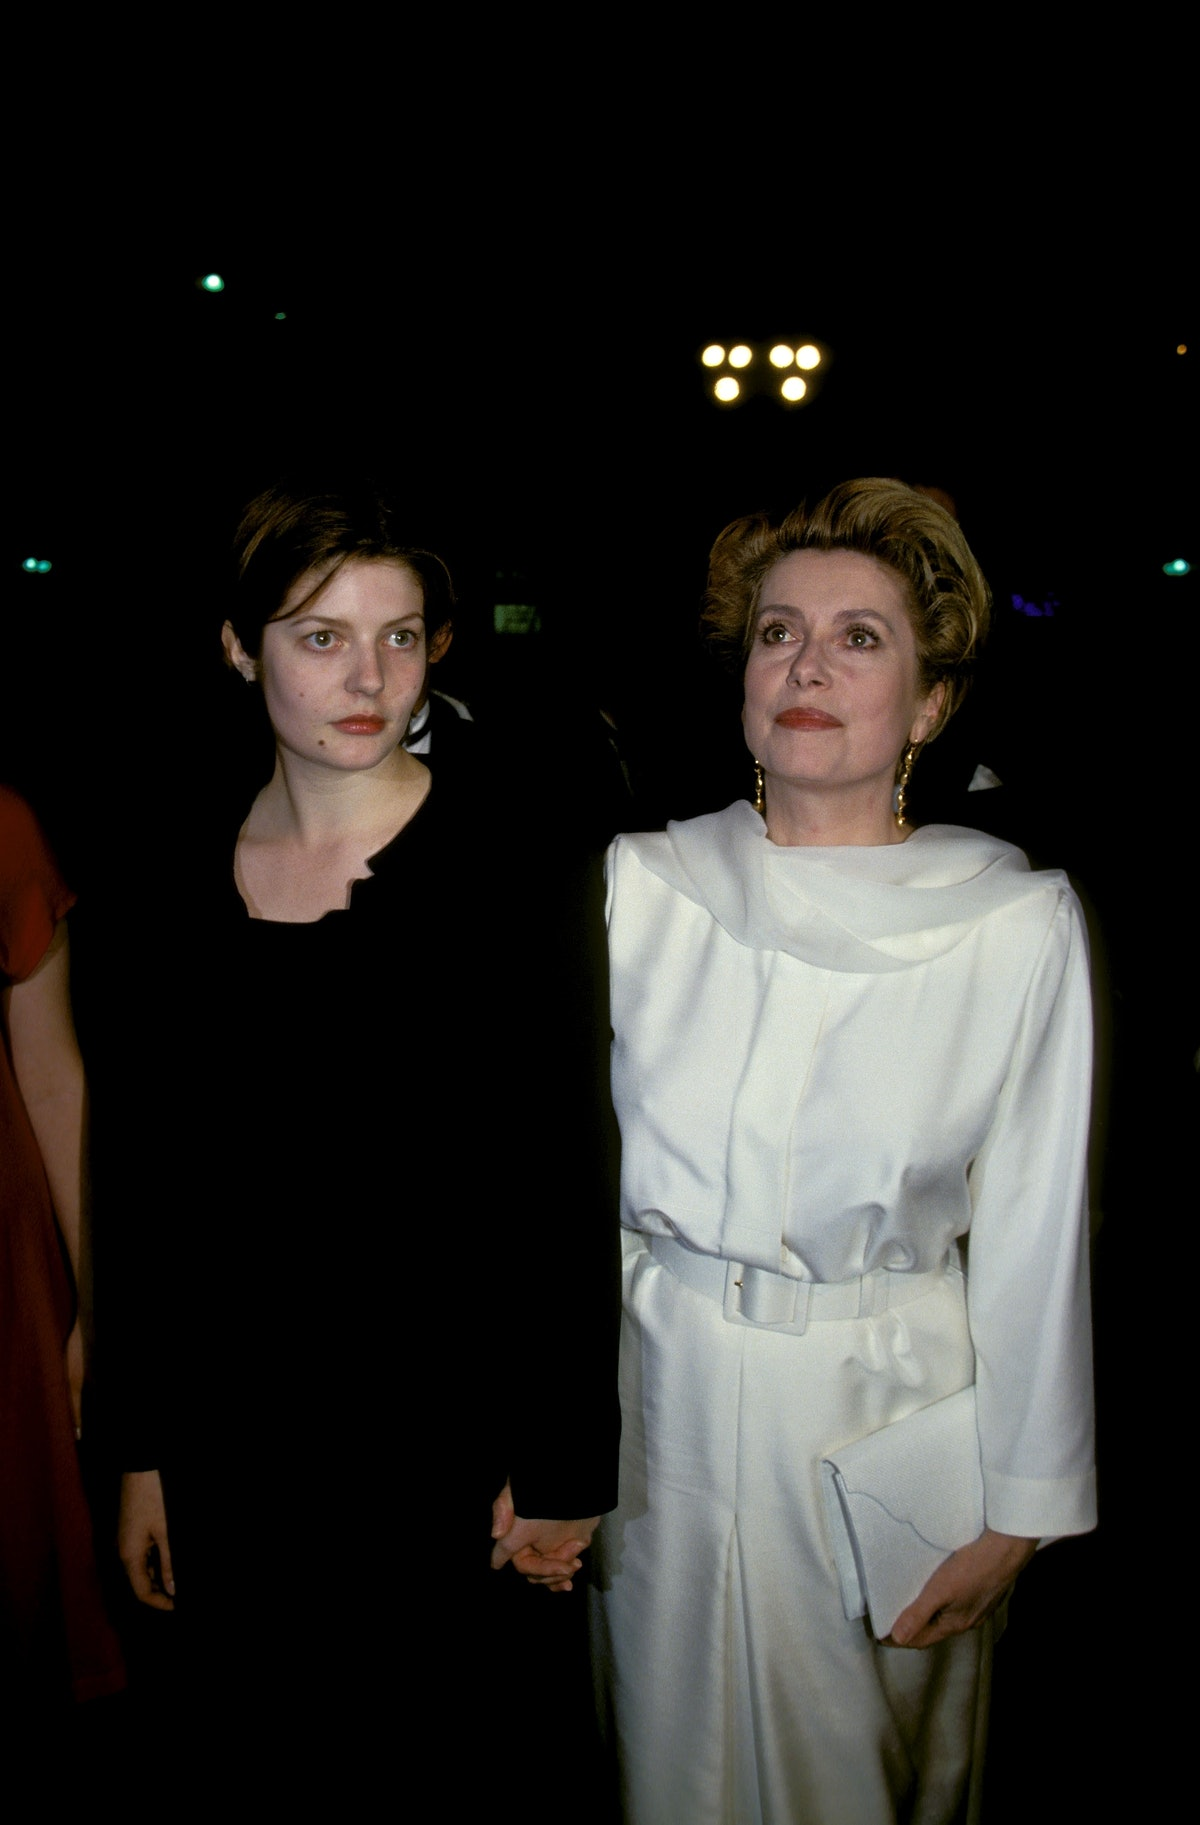 """Cannes 94: Strairs of Film """"PULP FICTION"""" in Cannes, France on May 20, 1995-"""